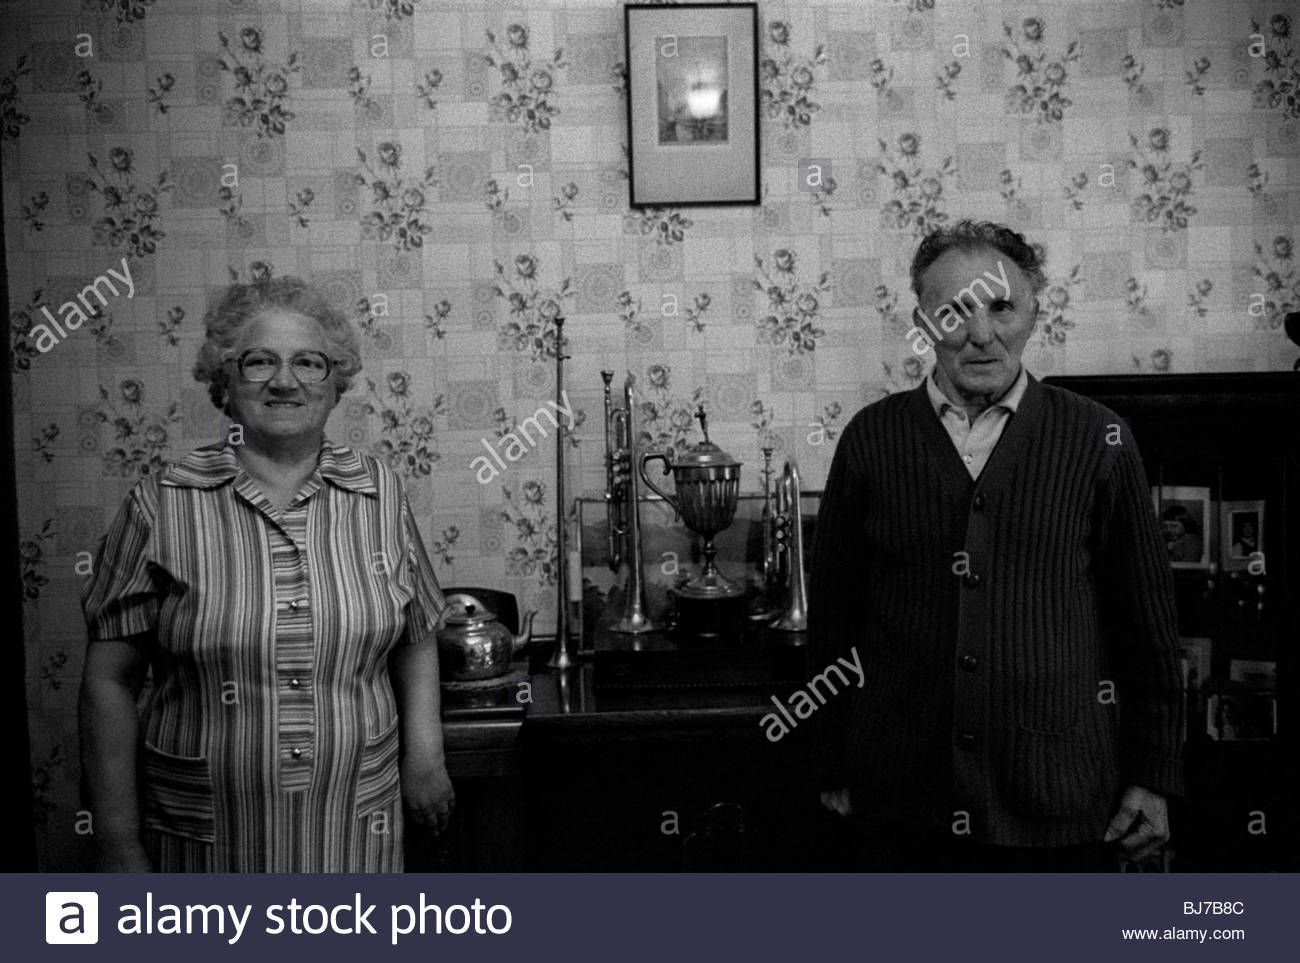 Older couple from the Black Country West Midlands Britain 1970s - Stock Image